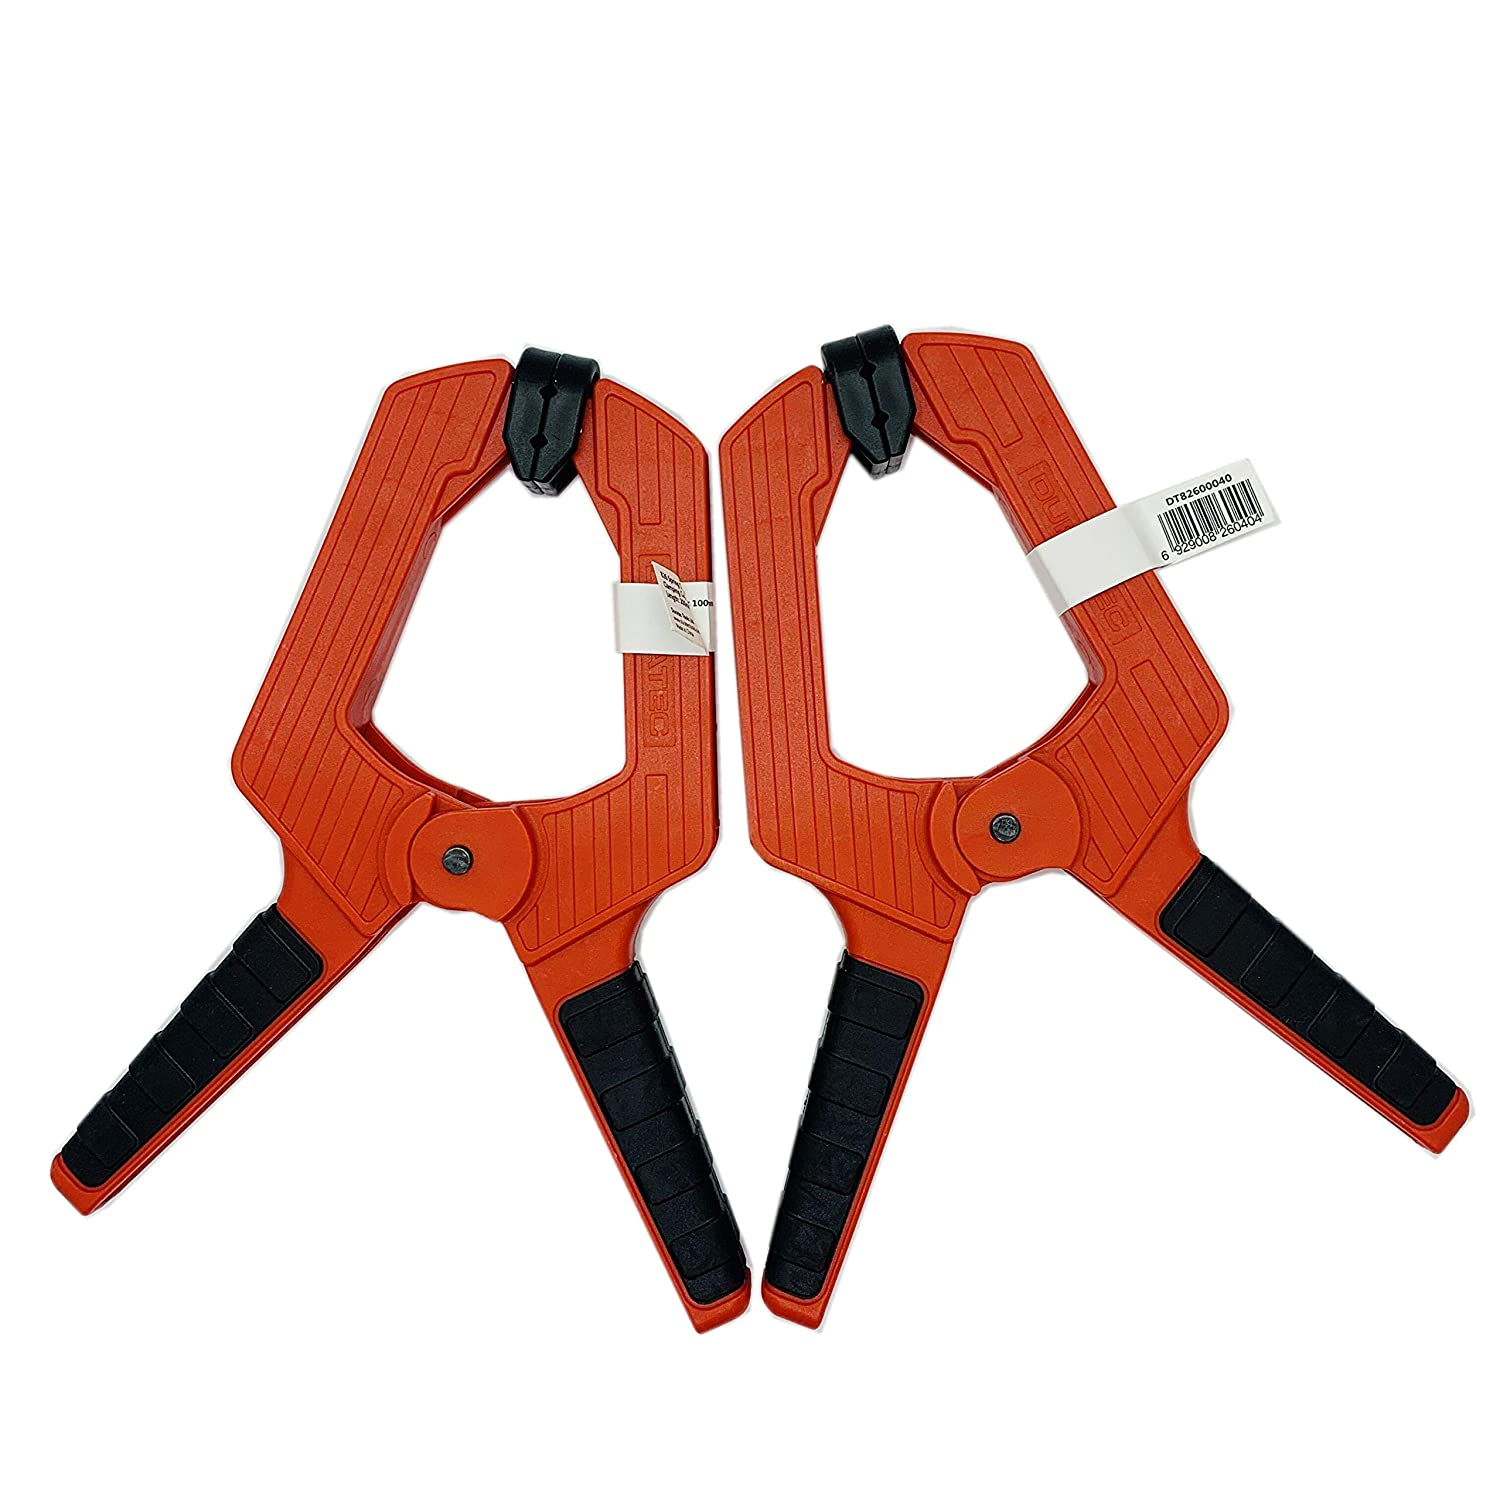 Fladess #826 Spring Clamp set of 2, 7inch